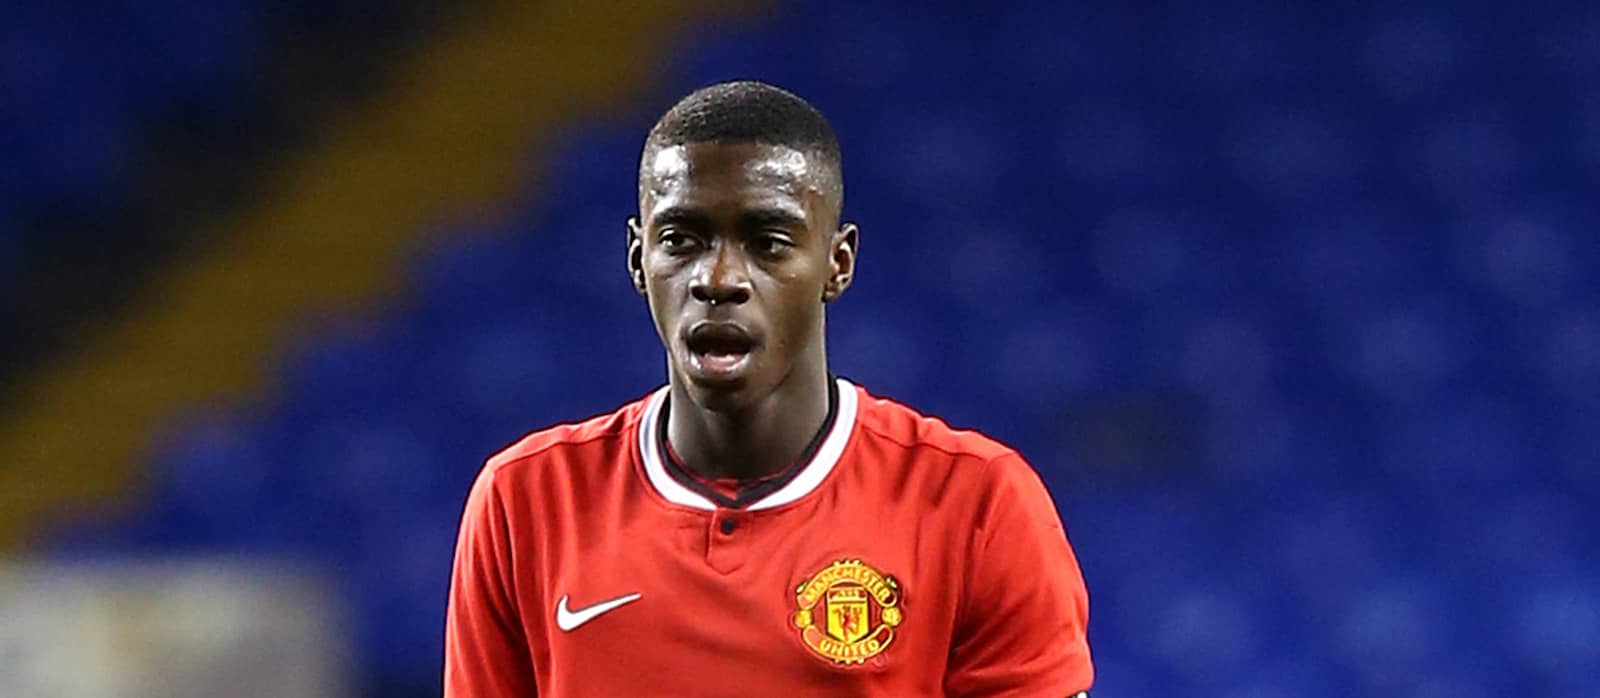 Axel Tuanzebe in training with Manchester United's first-team